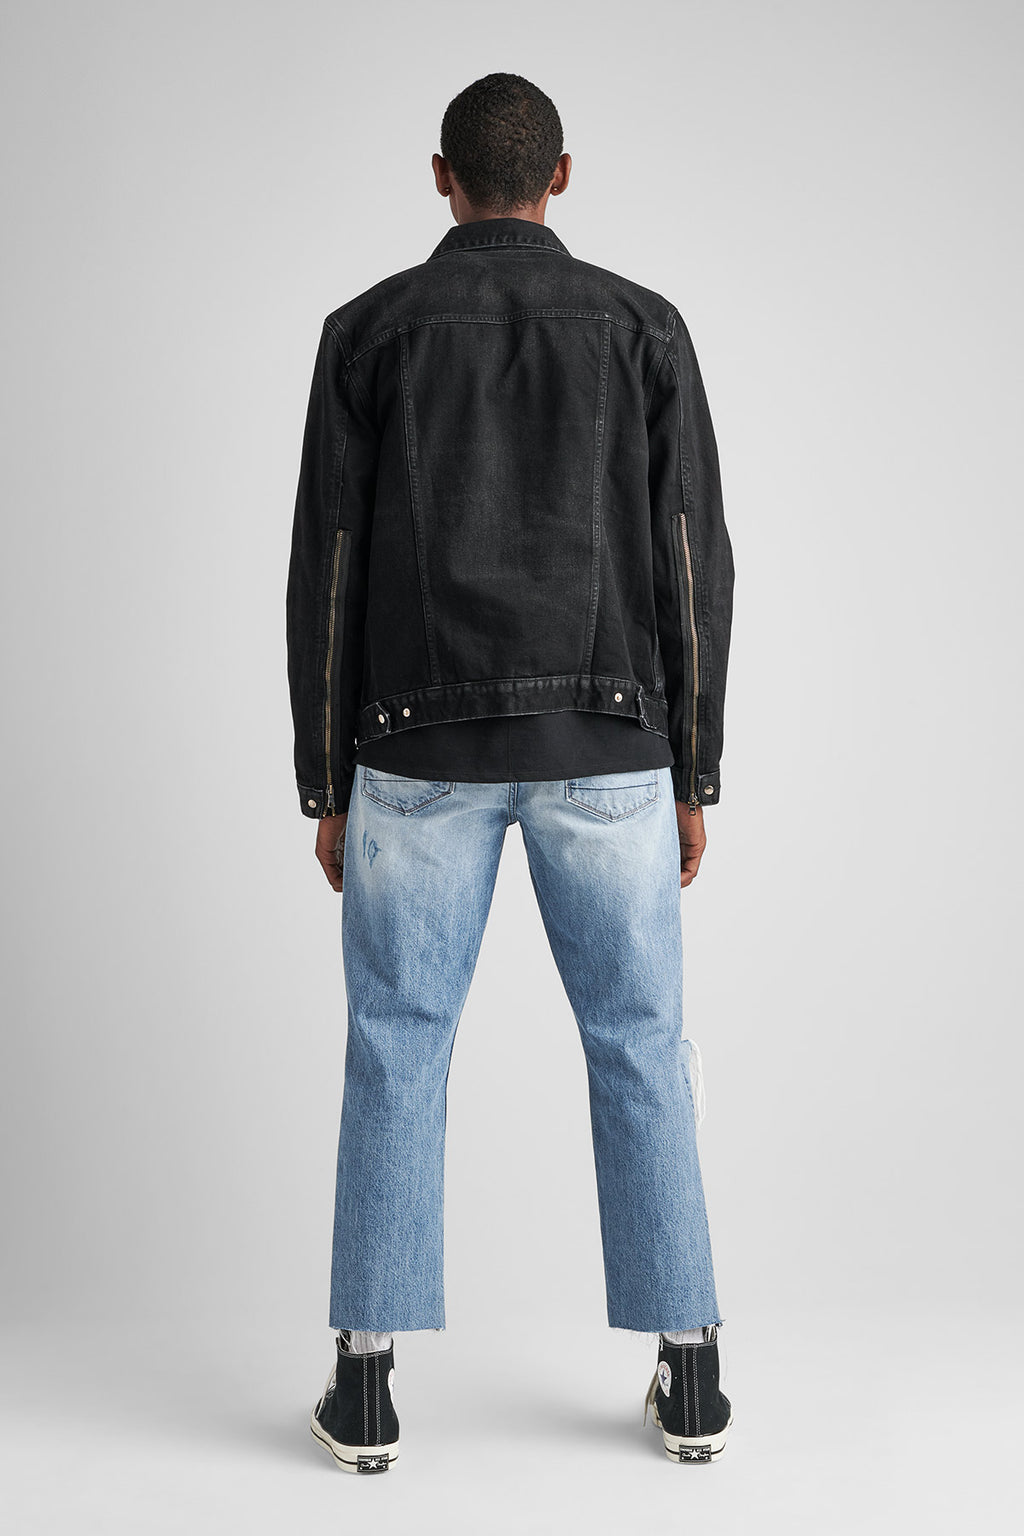 DONOVAN DENIM JACKET - WRIGHT - Image 2